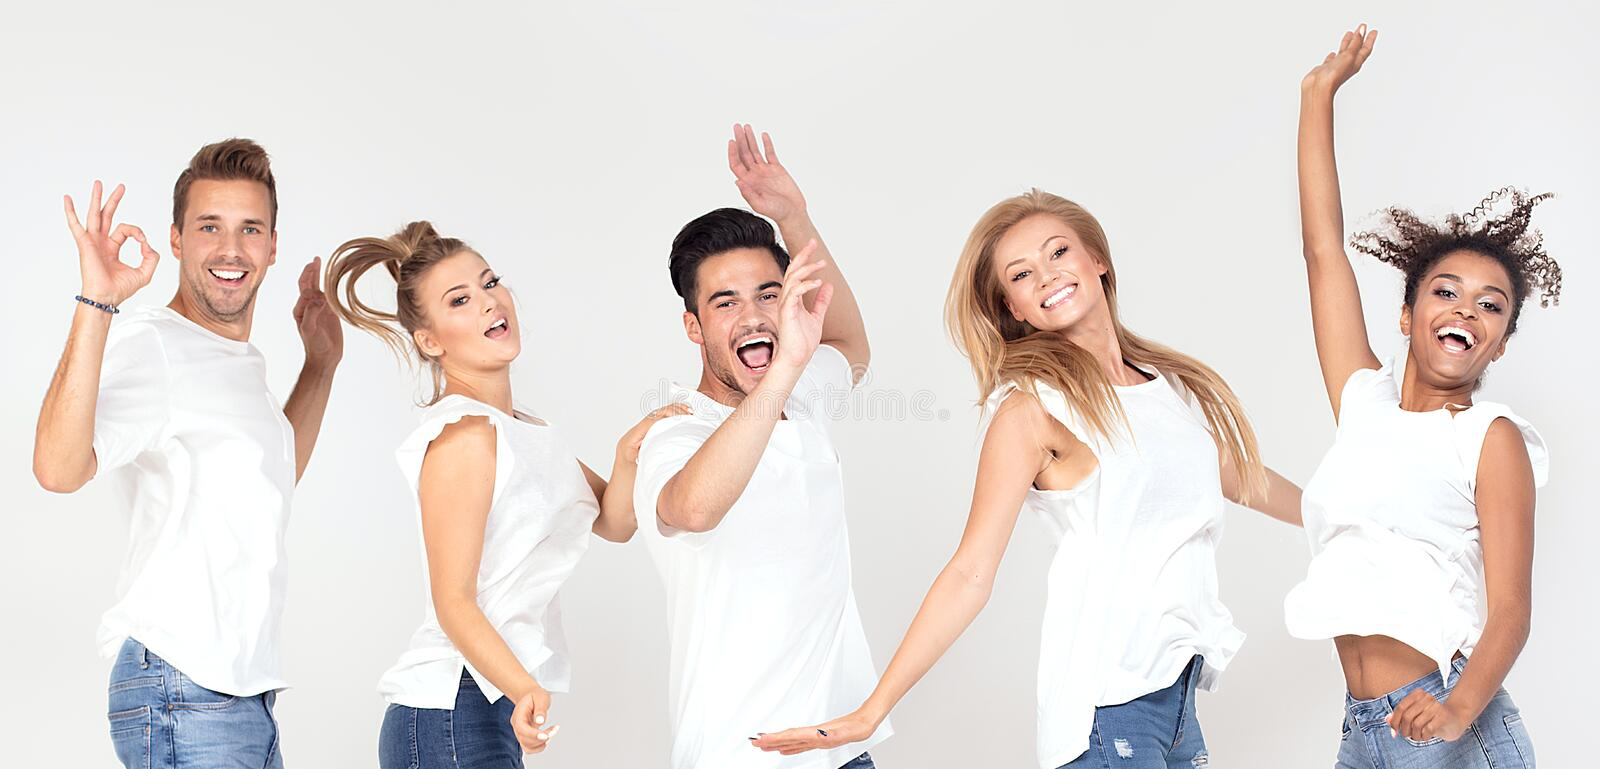 Group of smiling people jumping,having fun together. royalty free stock images